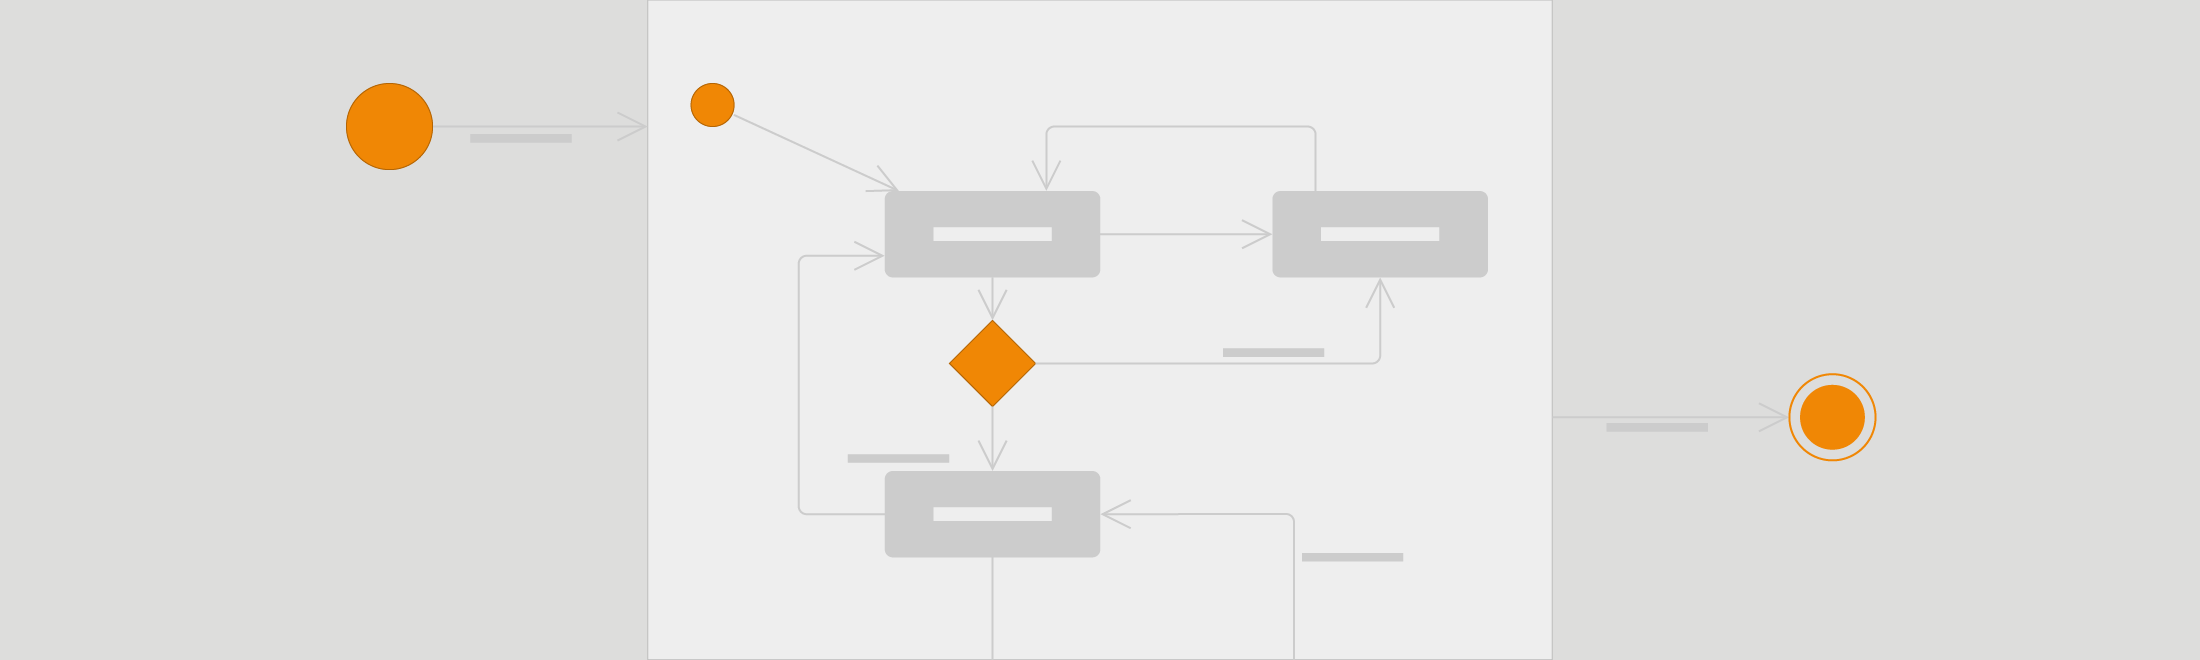 With draw.io you can easily create UML state diagrams.